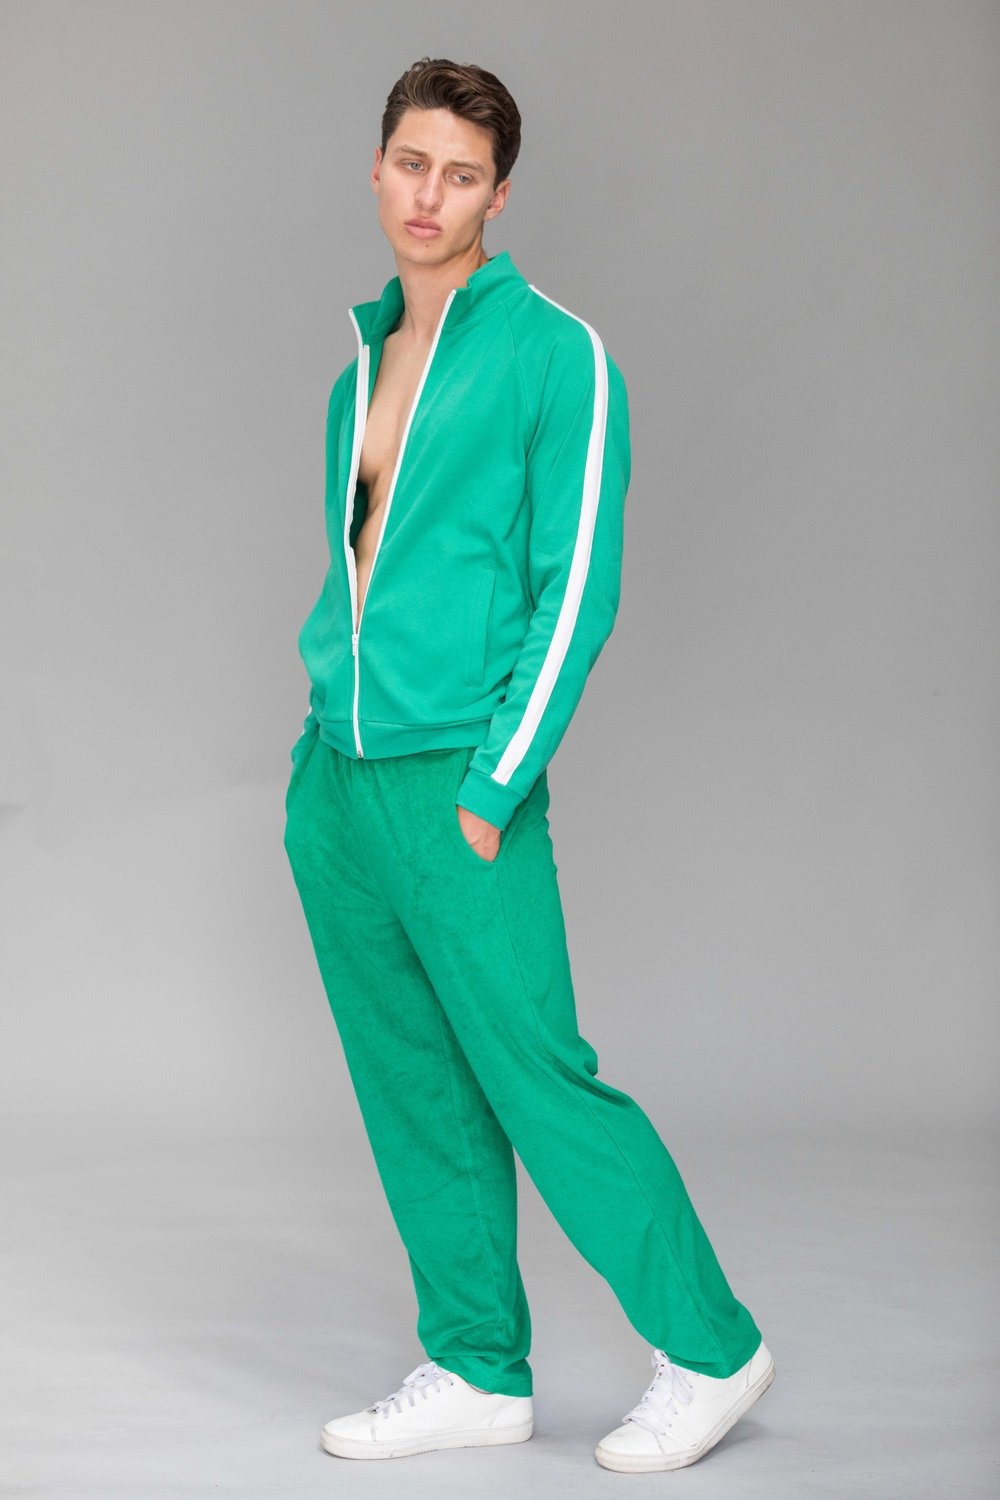 Joggers and zip up -  American Apparel , sneakers - models own